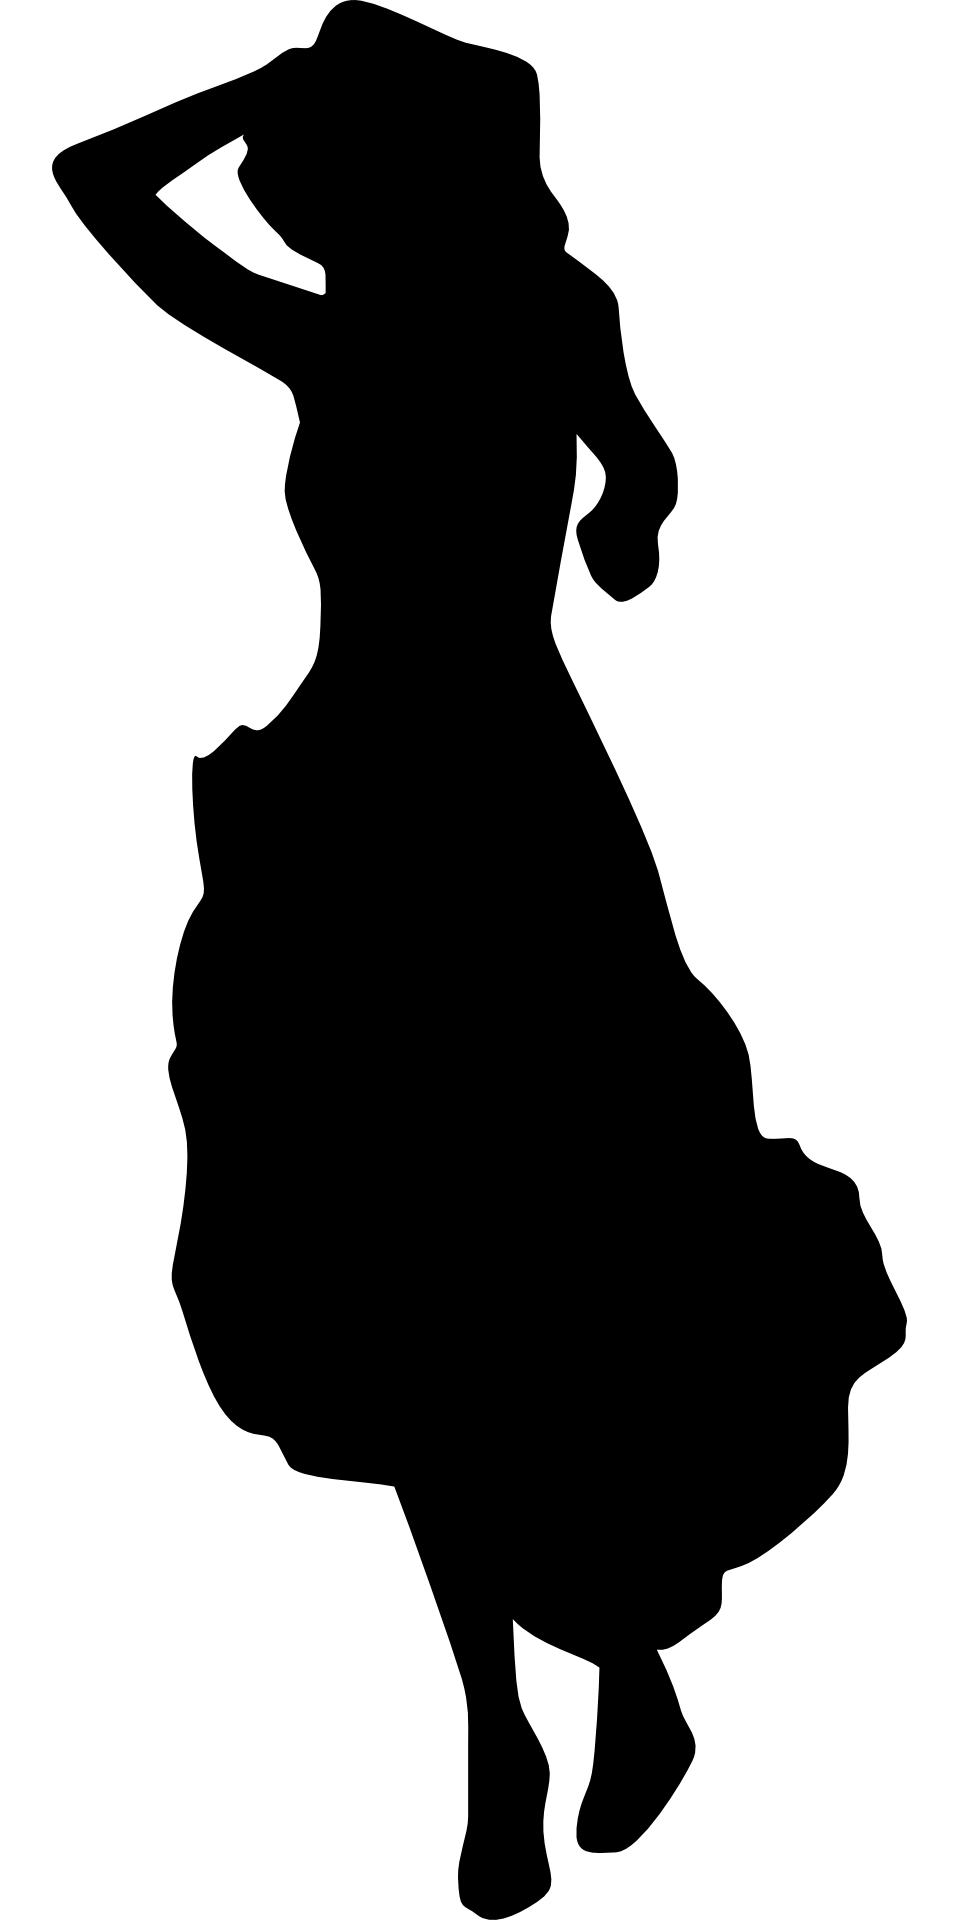 960x1920 Lady Moving Woman Dress Silhouette Black White Drawing Free Image